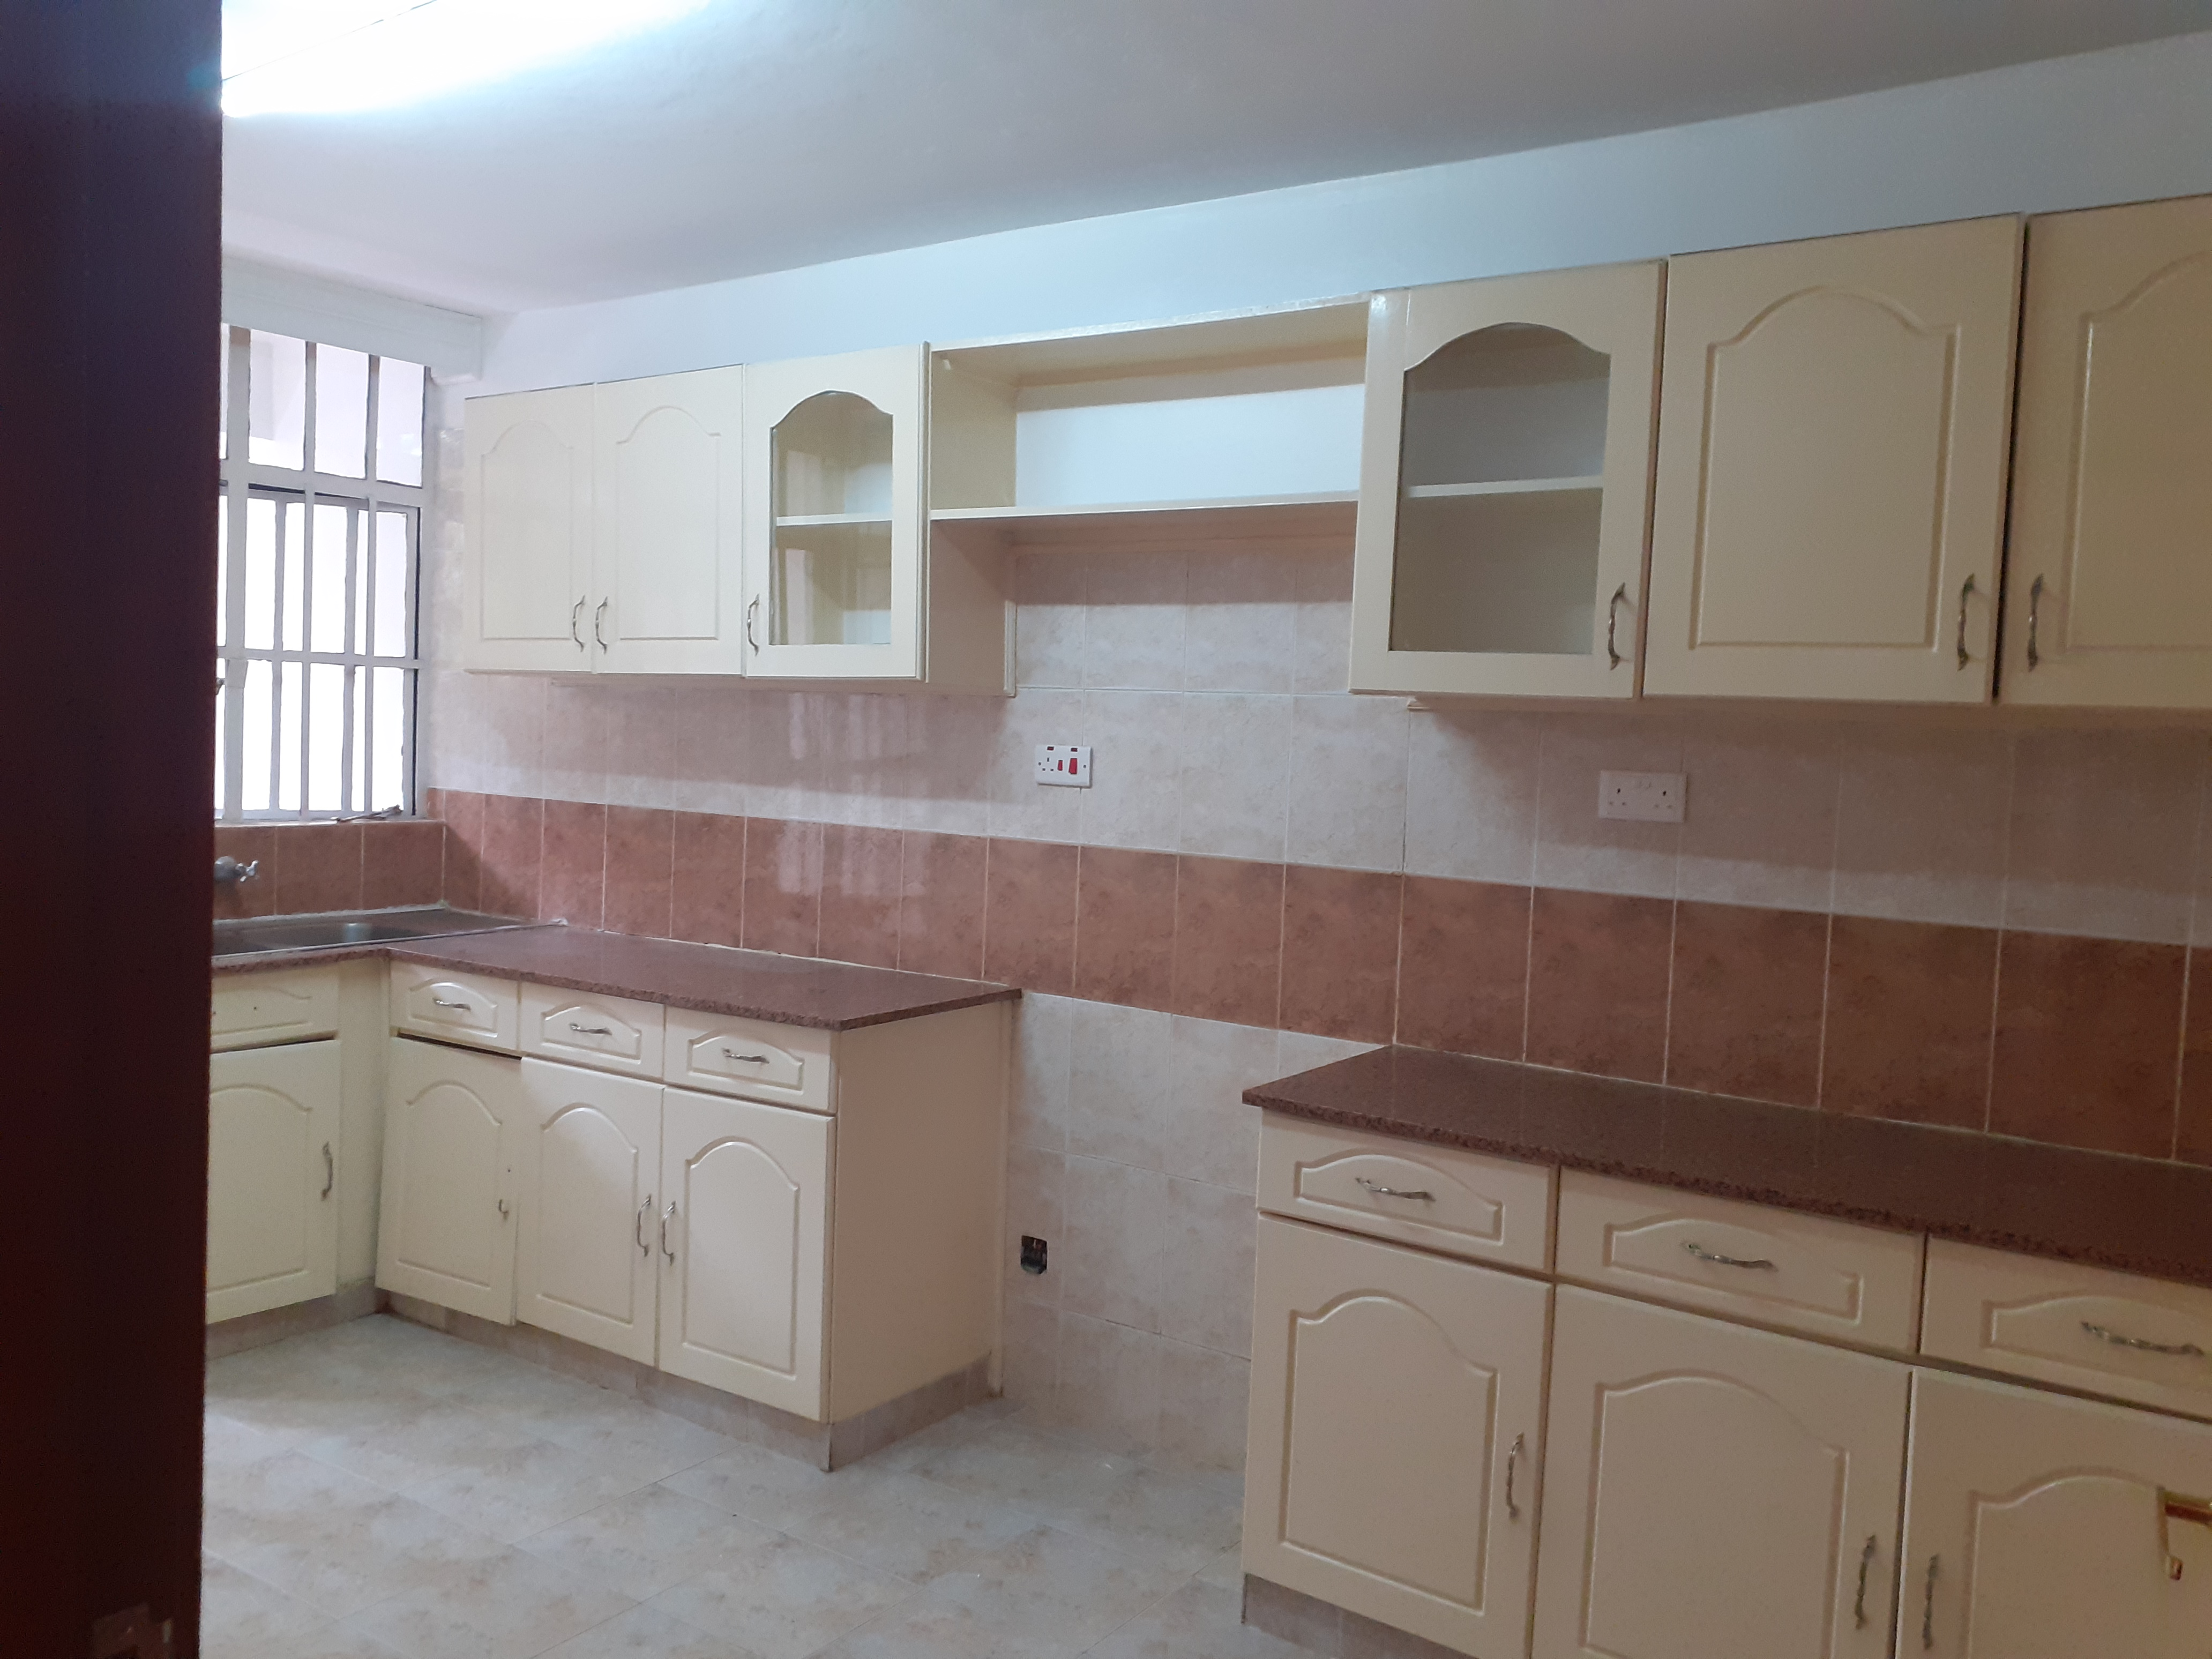 3 Bedroom Apartment for sale in Lavington!